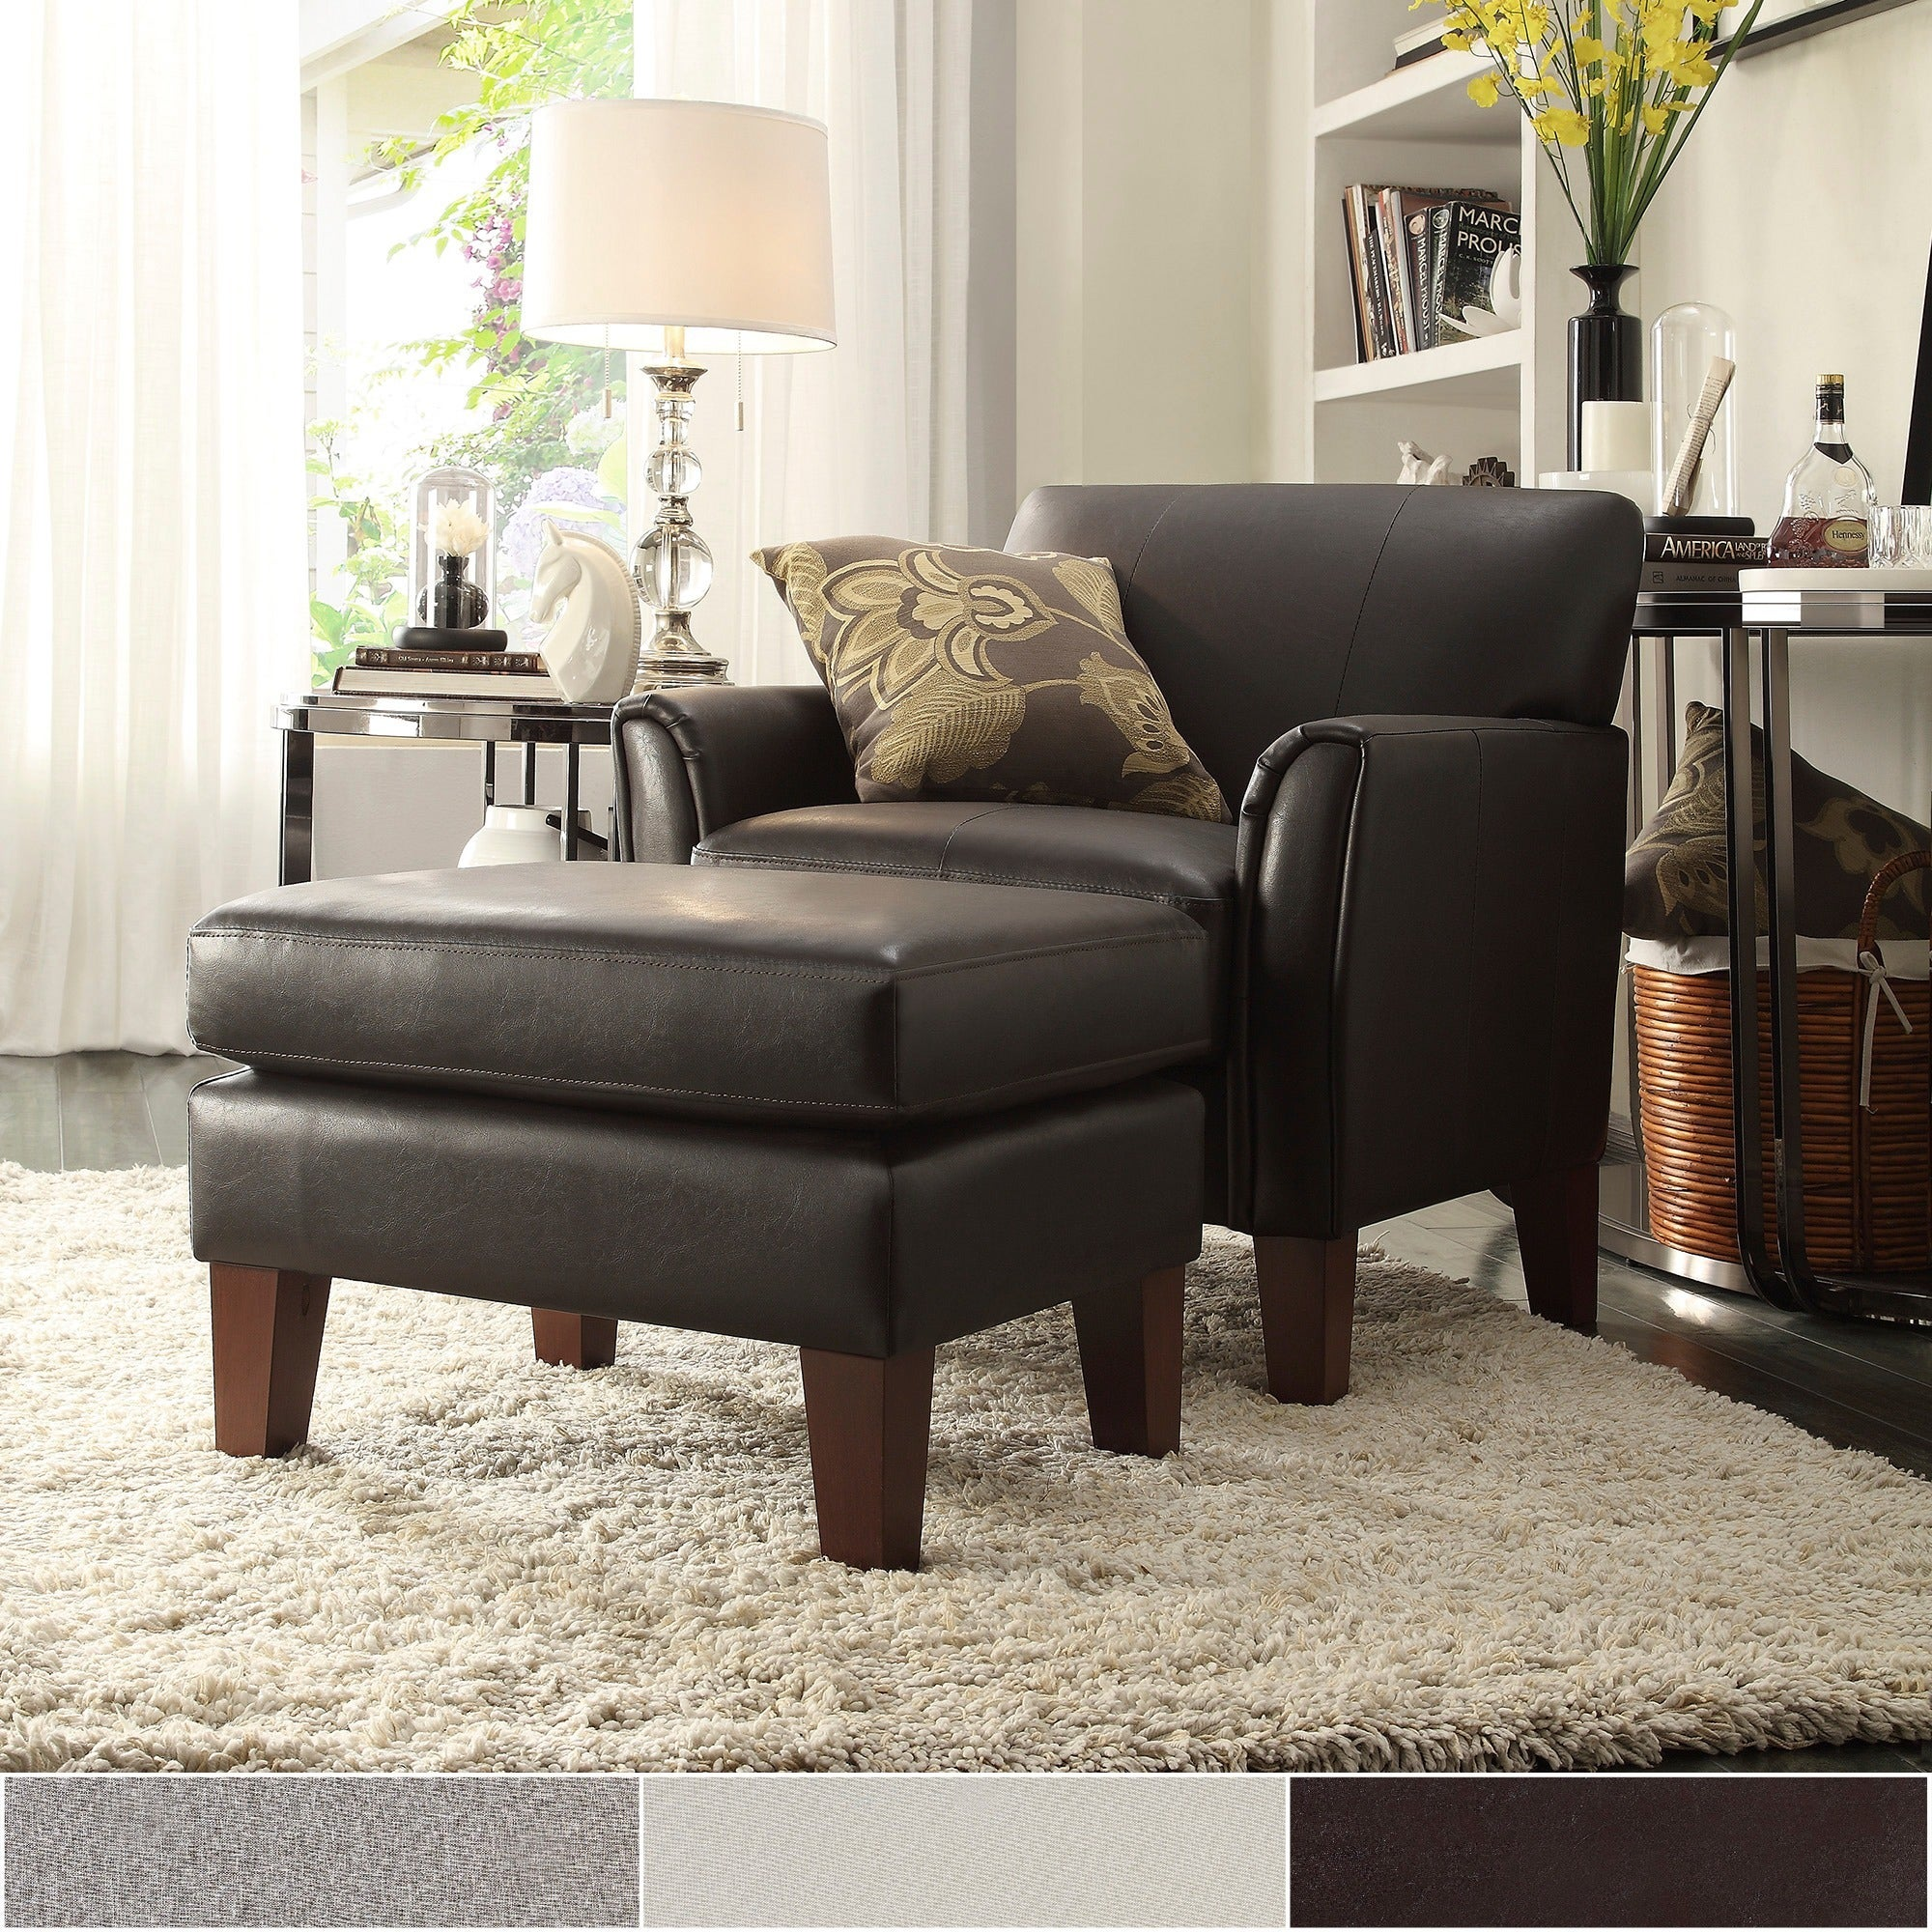 ray legs ottomans feature modern info size dsw skipset ebay rentals eames ottoman rocker inspired with chair chairs metal and replica molded delivery leather of miller dark table white amazon navy charles black plastic style dining overstock chrome herman lounge full uk wooden